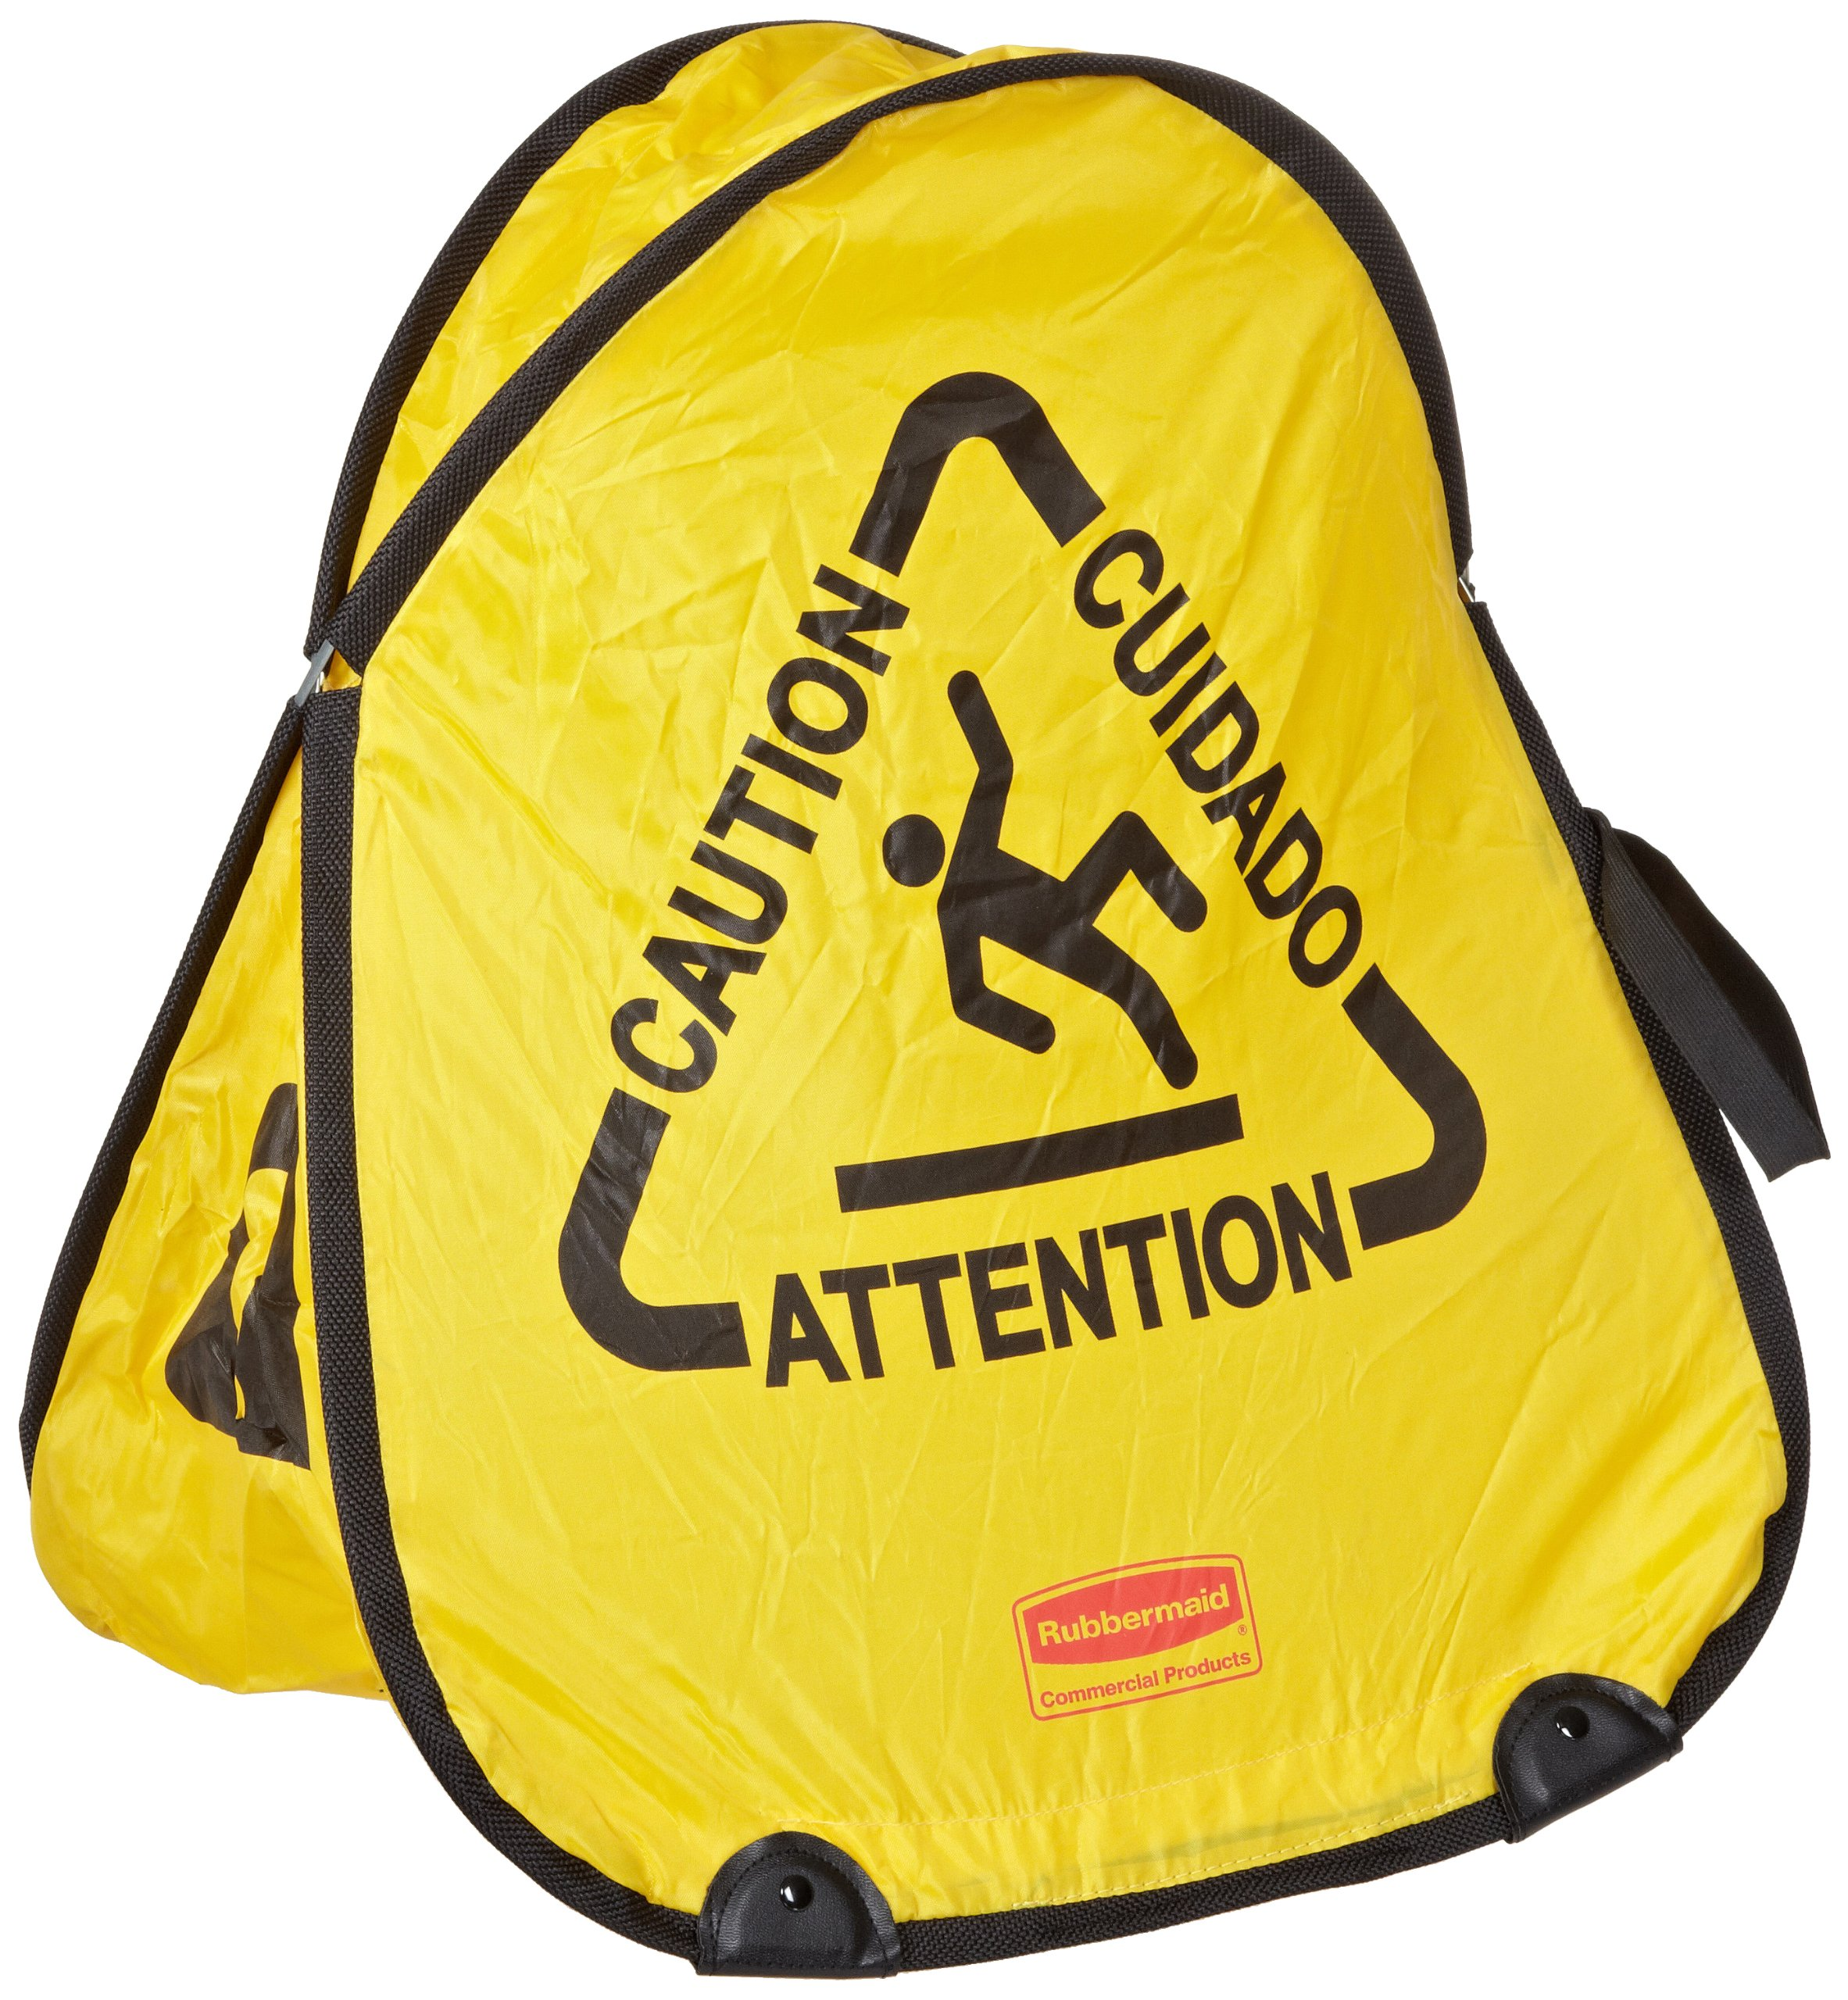 Rubbermaid Commercial 20 Inch Miltilingual ''Caution'' Folding Safety Cone, Yellow (FG9S0700YEL) by Rubbermaid Commercial Products